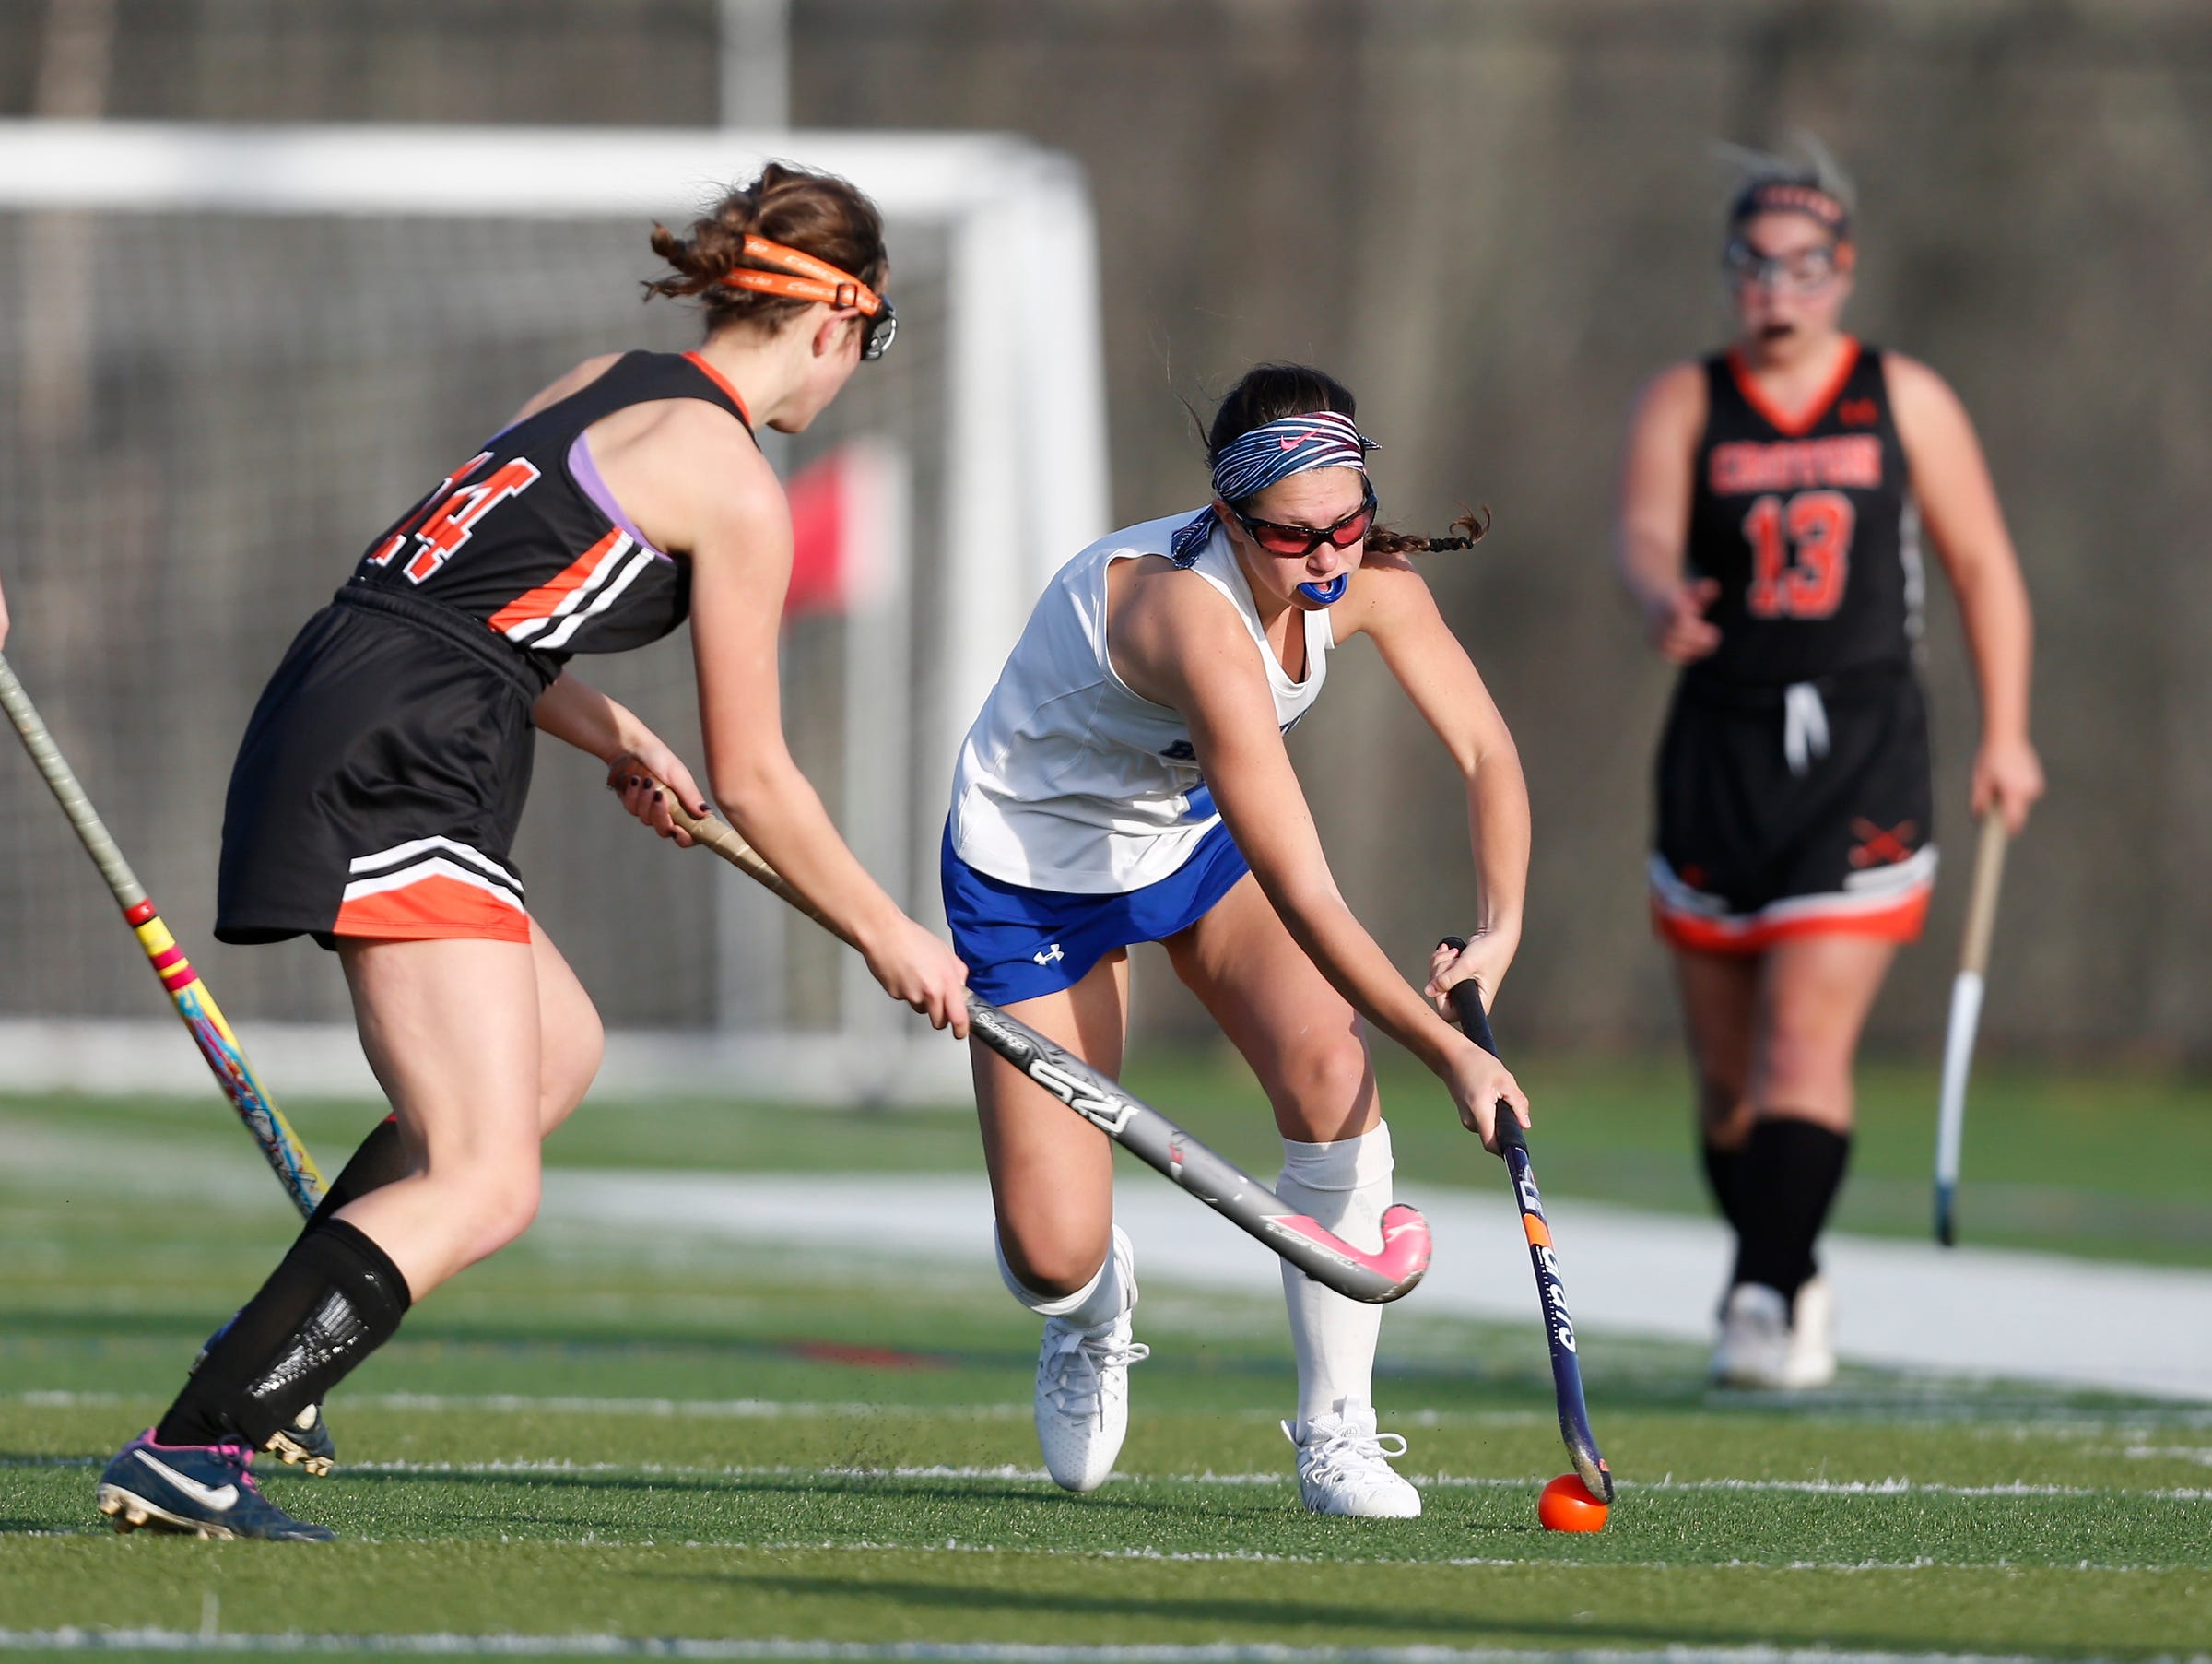 Bronxville's Arielle Vergara (1) works the ball past Croton's Katherine Gennarelli (14) during their 7-1 win in the Class C field hockey sectiion finals at Brewster High School on Tuesday, November 1, 2016.